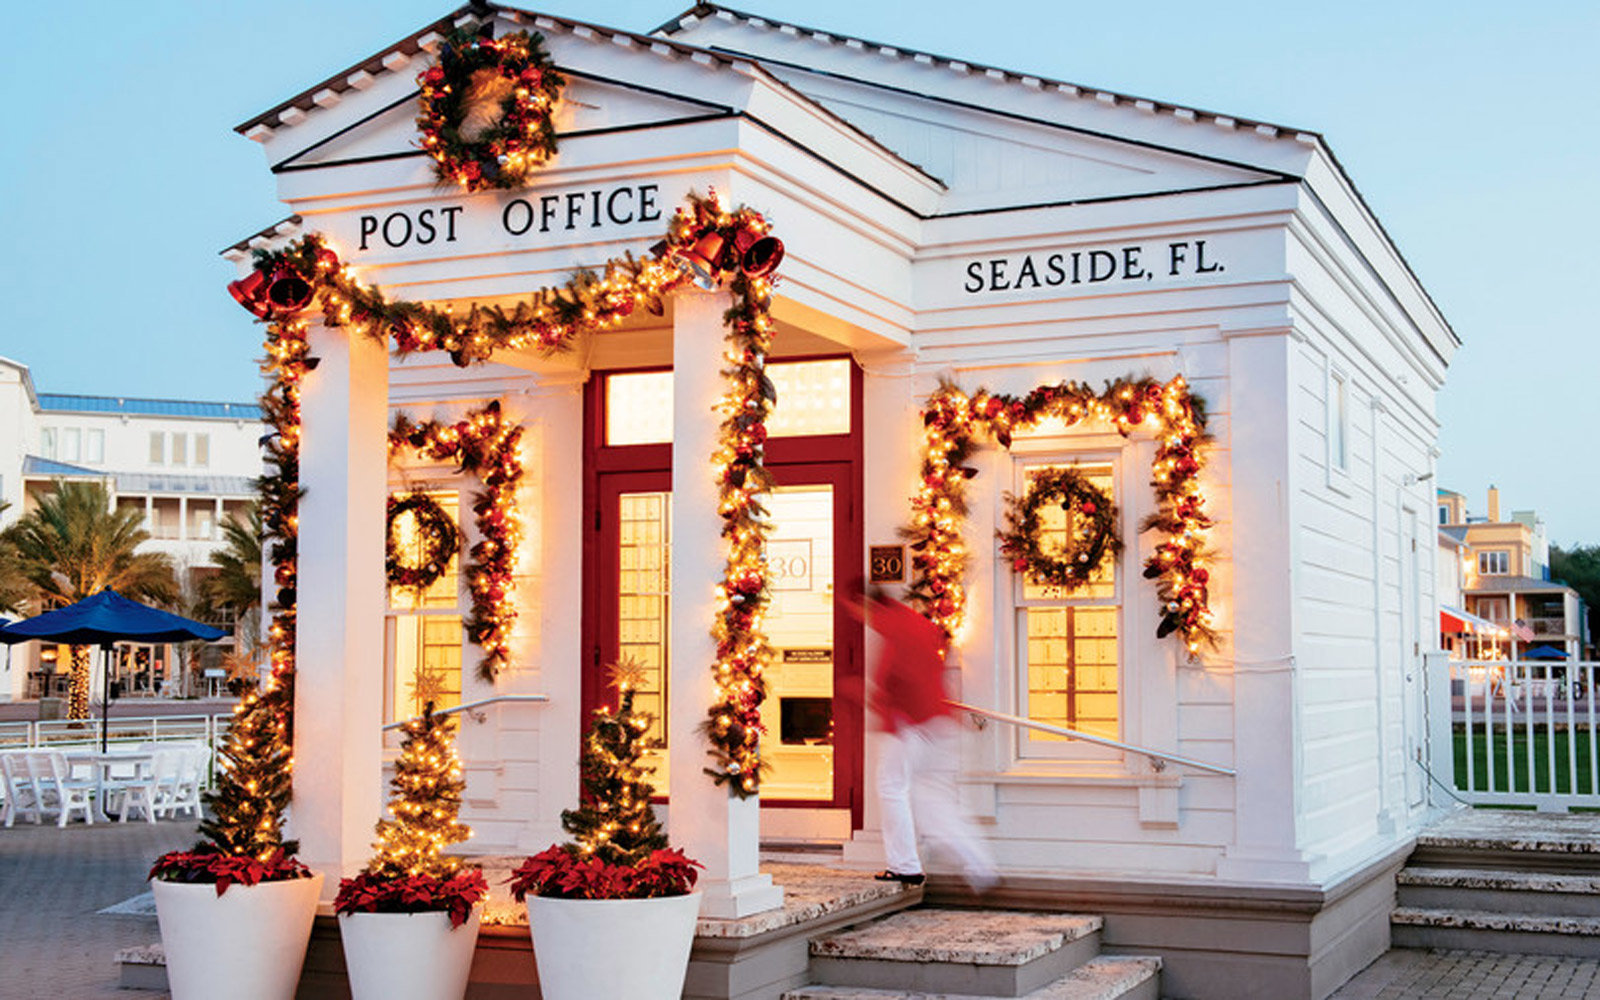 The Seaside Post Office serves as the town center as well as an actual working post office with a large grassy apitheatre behind it where the christmas tree is lighted and families and friends gather.